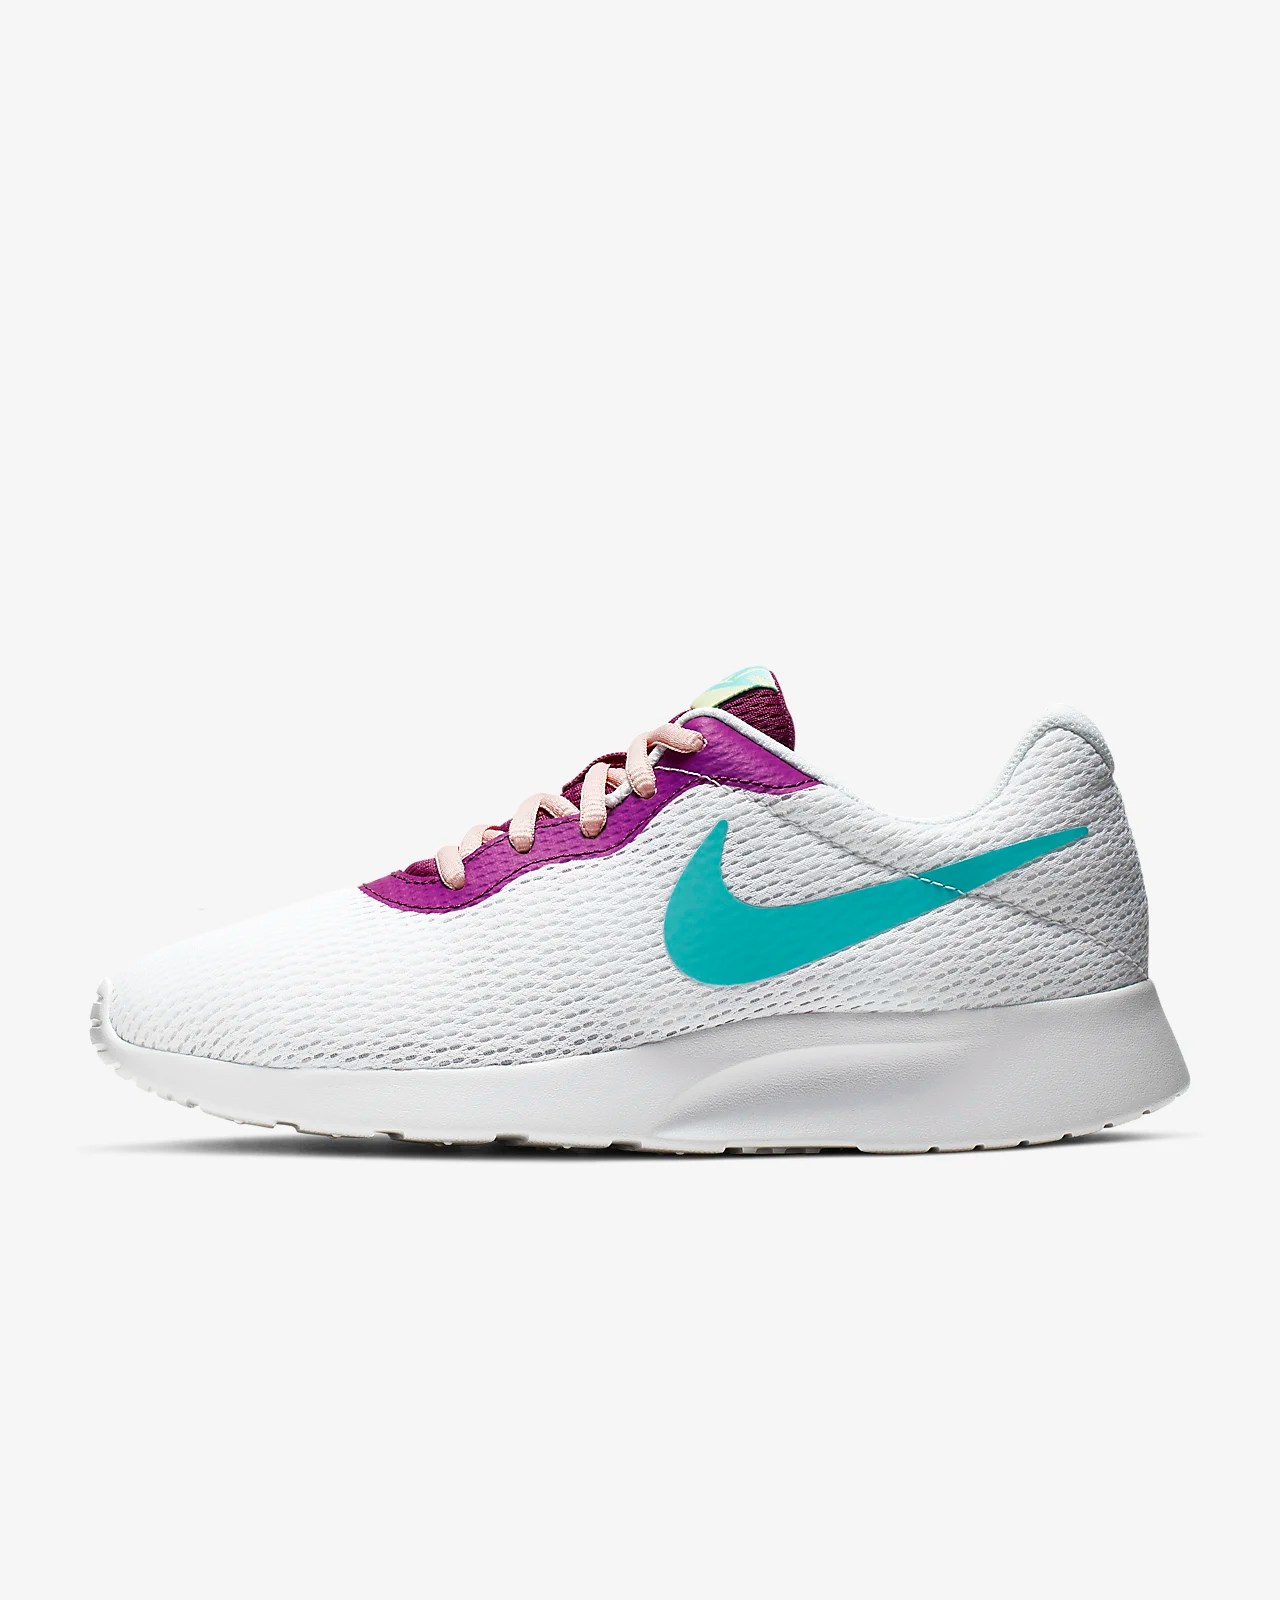 Harga Cat No Drop 2018 Nike Tanjun Women S Shoe